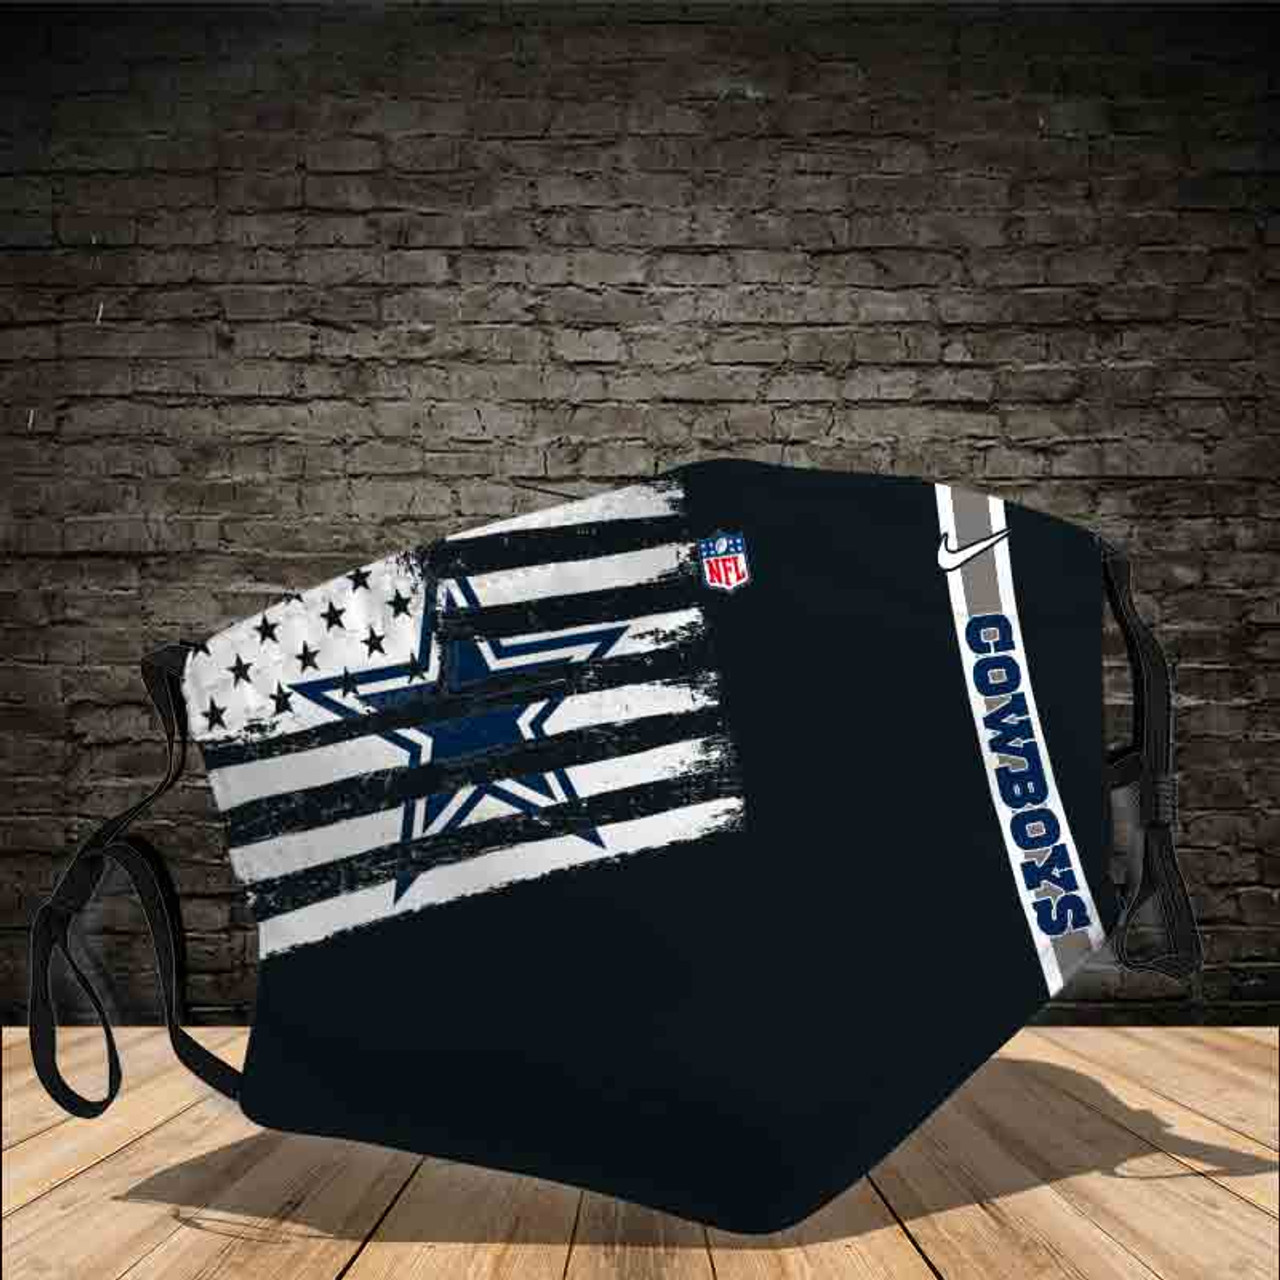 **(OFFICIAL NFL.DALLAS-COWBOYS CUSTOM 3D PRINTED DESIGNS/BREATHABLE PM2.5 FILTER BACTERIA/VIRUS PROOF & ANTI DUST PROOF WITH-ADJUSTABLE TIE-BACKS/REUSABLE-MACHINE-WASHABLE CUSTOM FACE MASKS/WITH ADJUSTABLE-NOSE-CLIPS & INSIDE-5-LAYERED-FILTERS)**